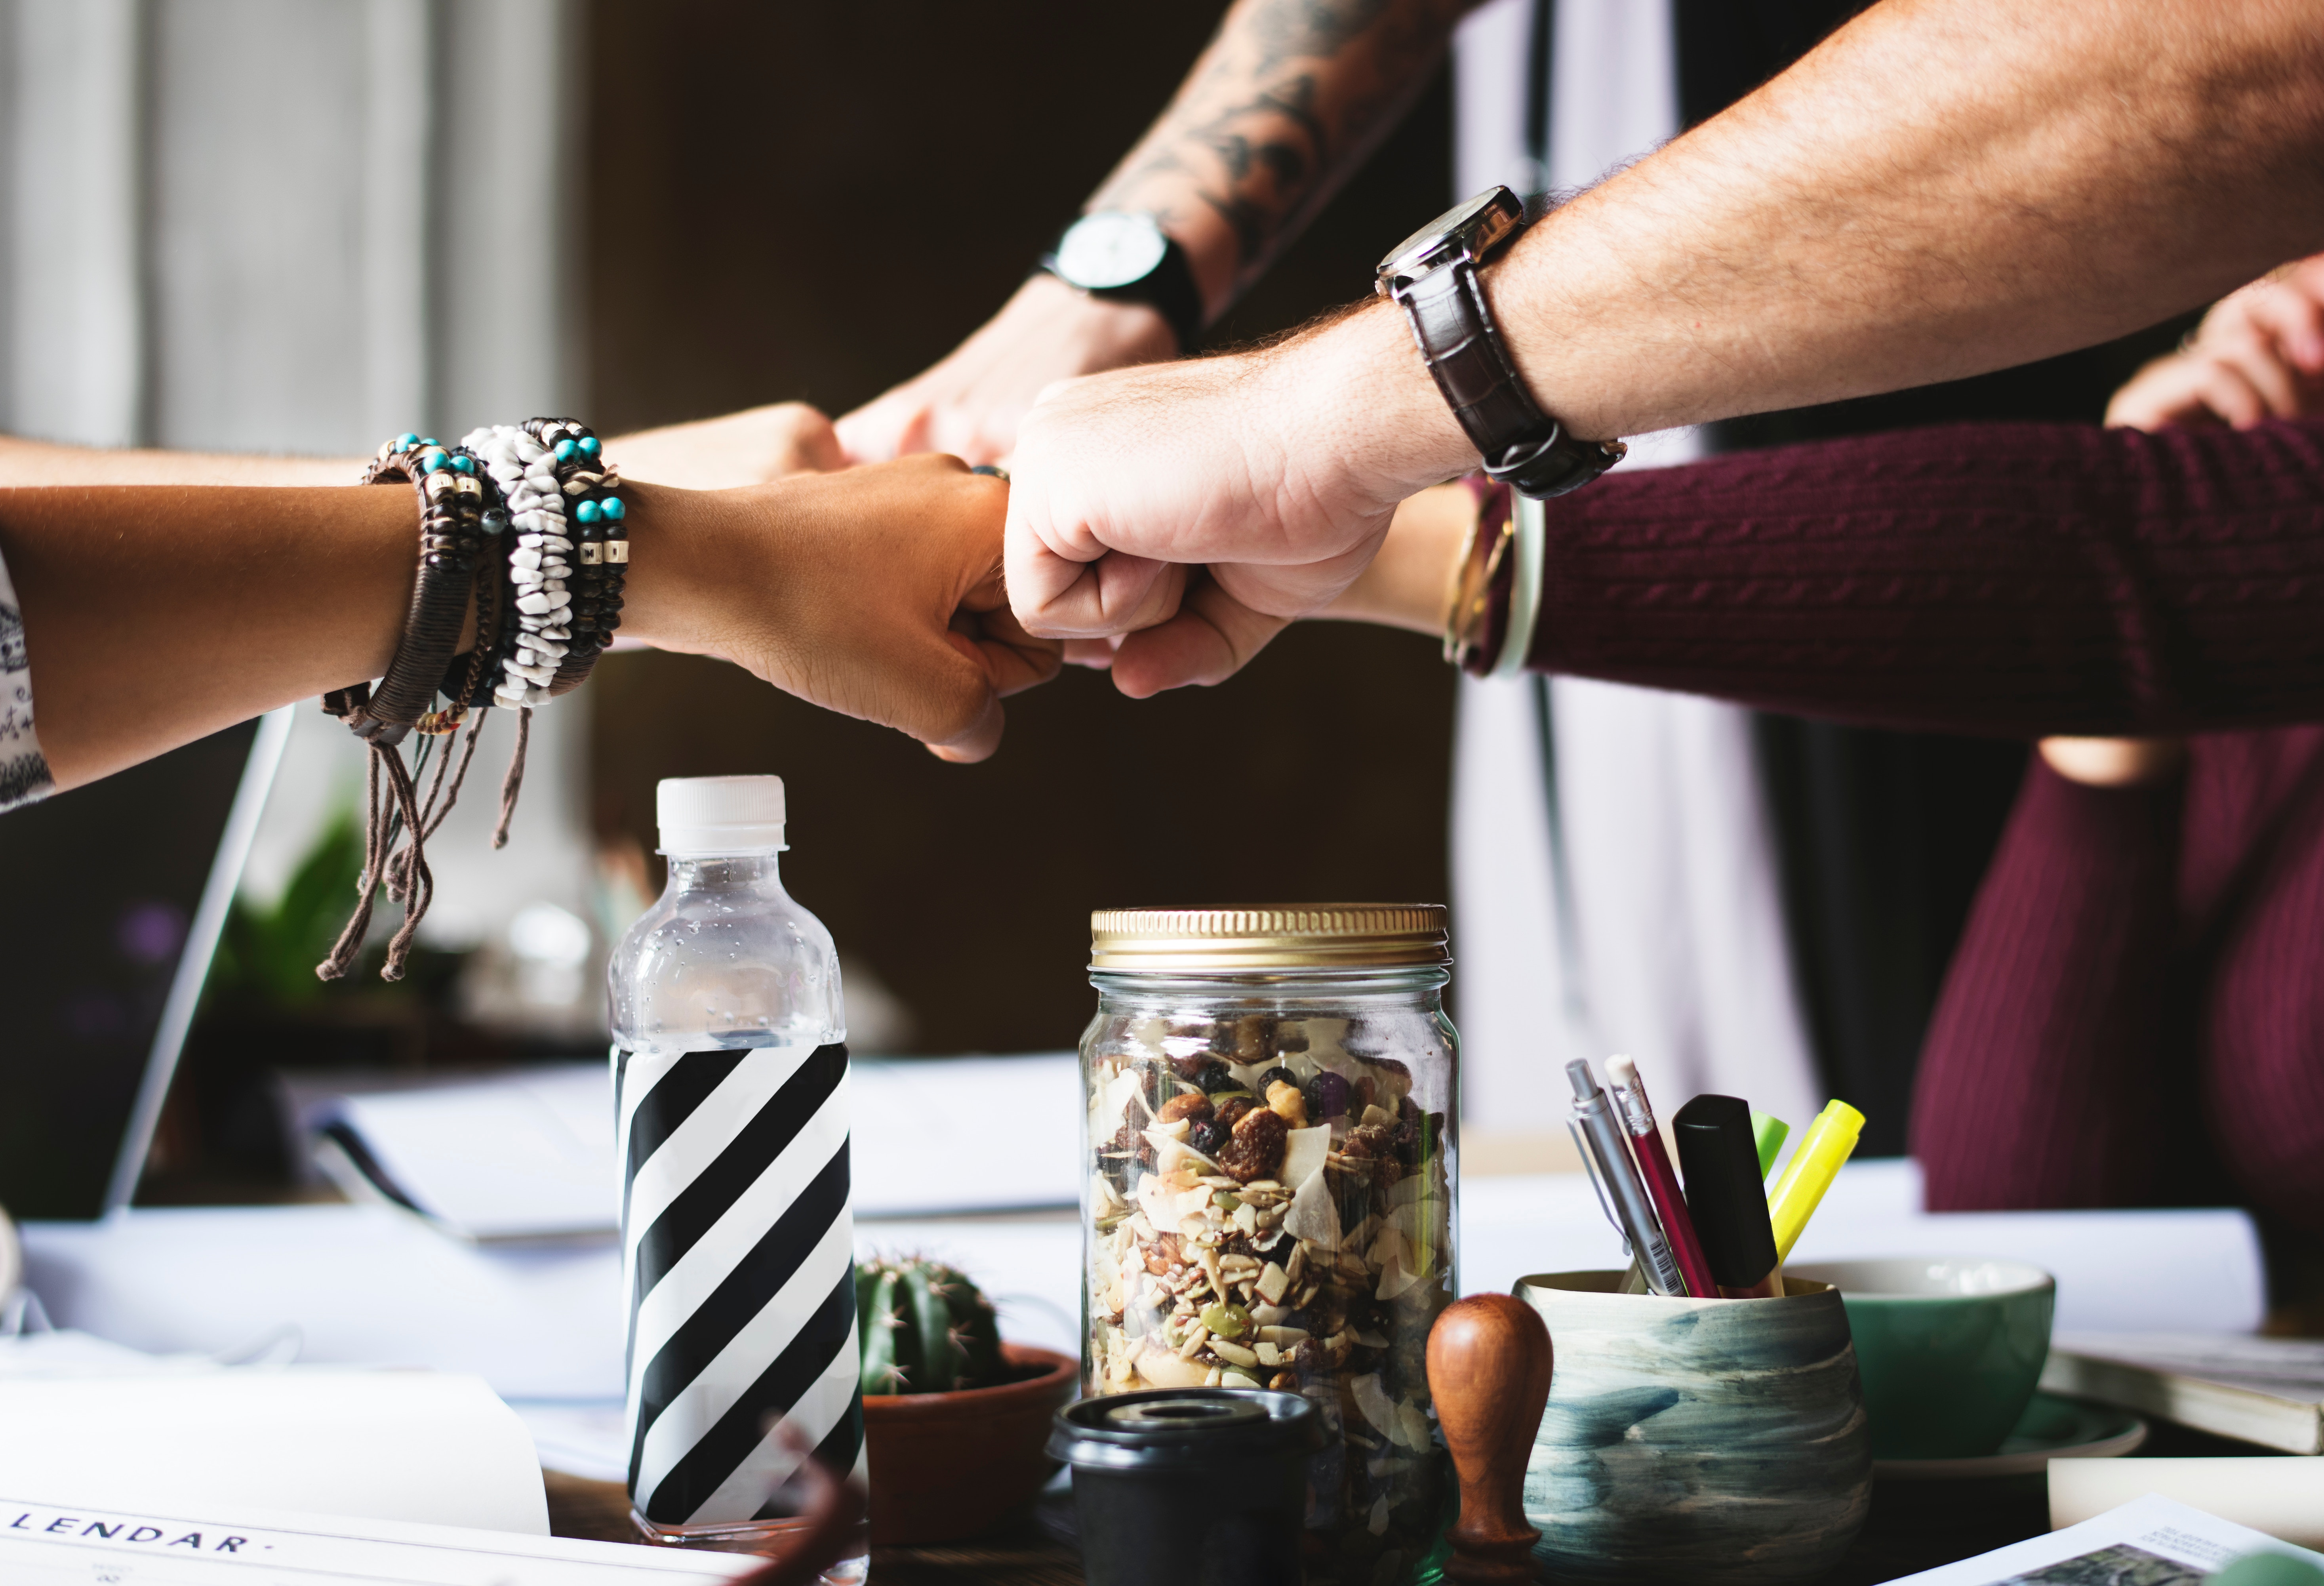 3 ways to overcome financial distress while improving employee trust